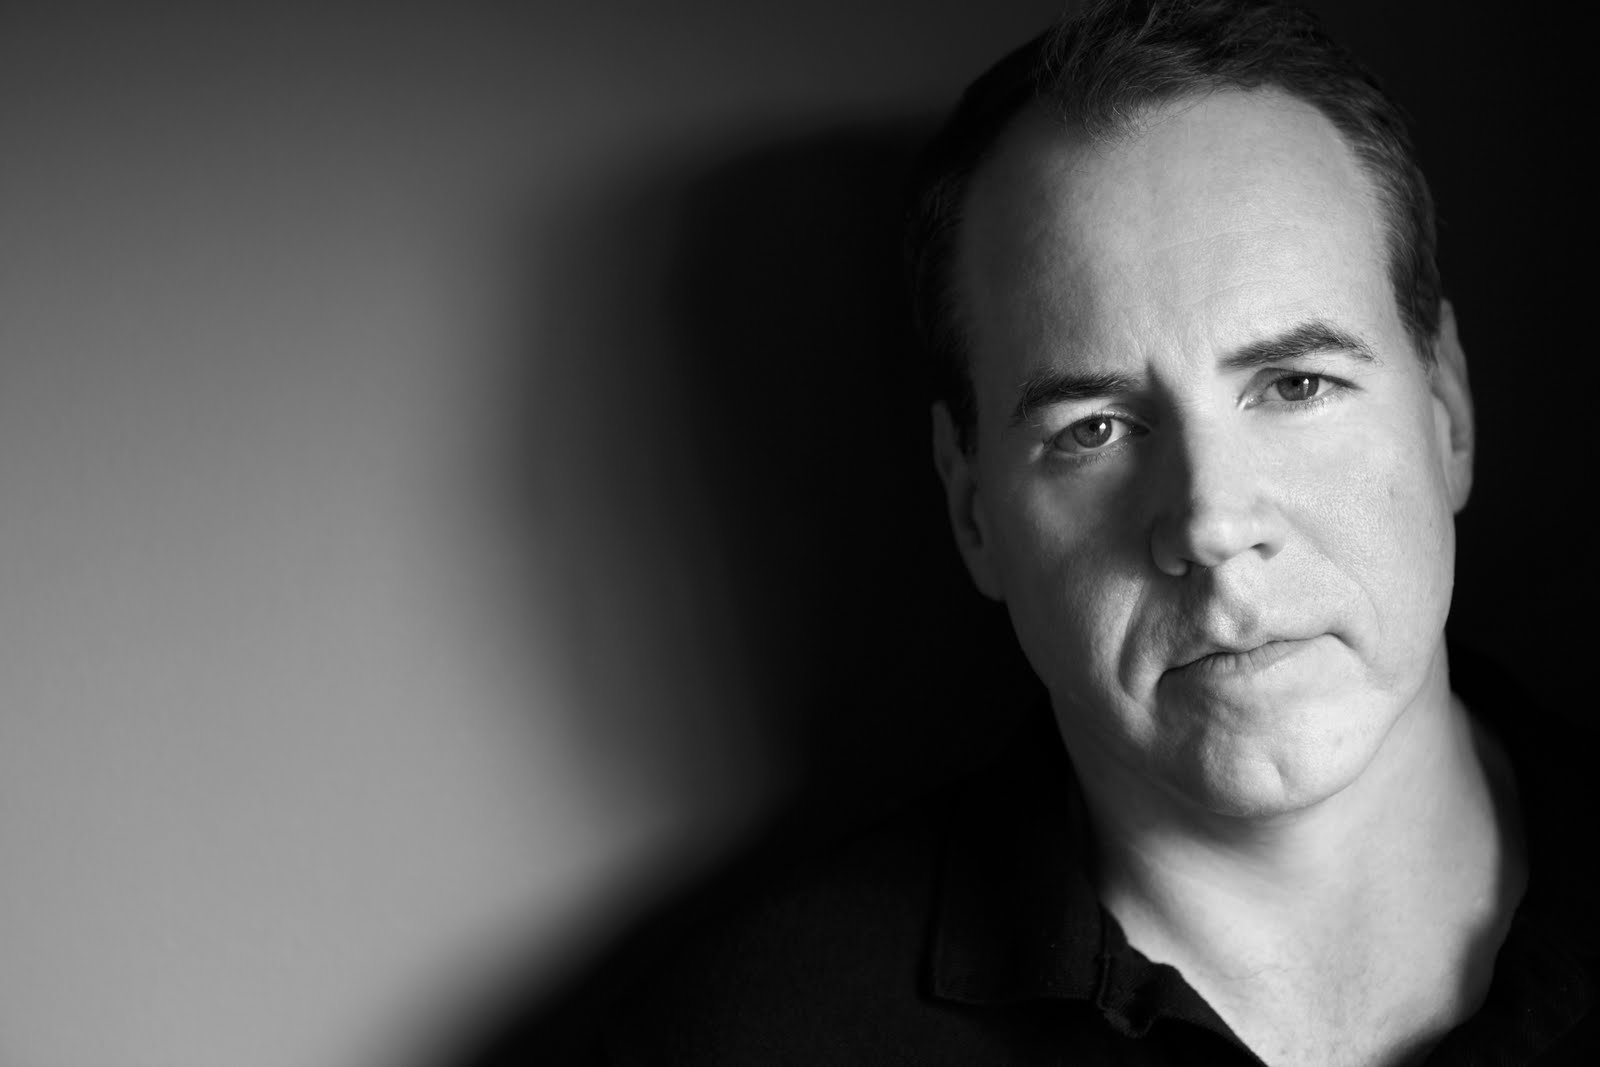 Should Bret Easton Ellis have written 'a violent action game'?